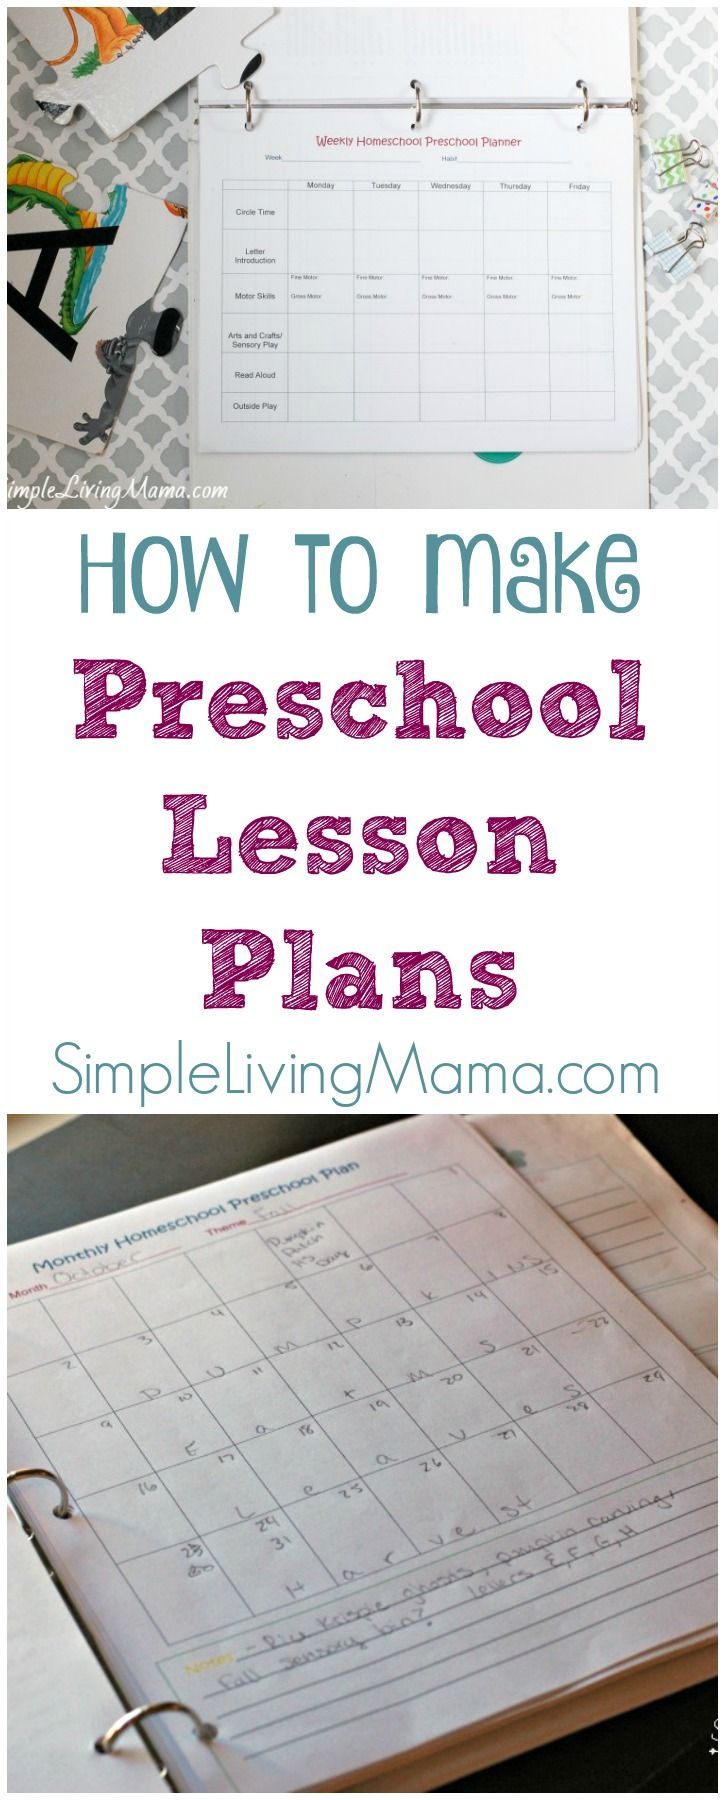 How To Make Preschool Lesson Plans | Homeschool, Learning and School